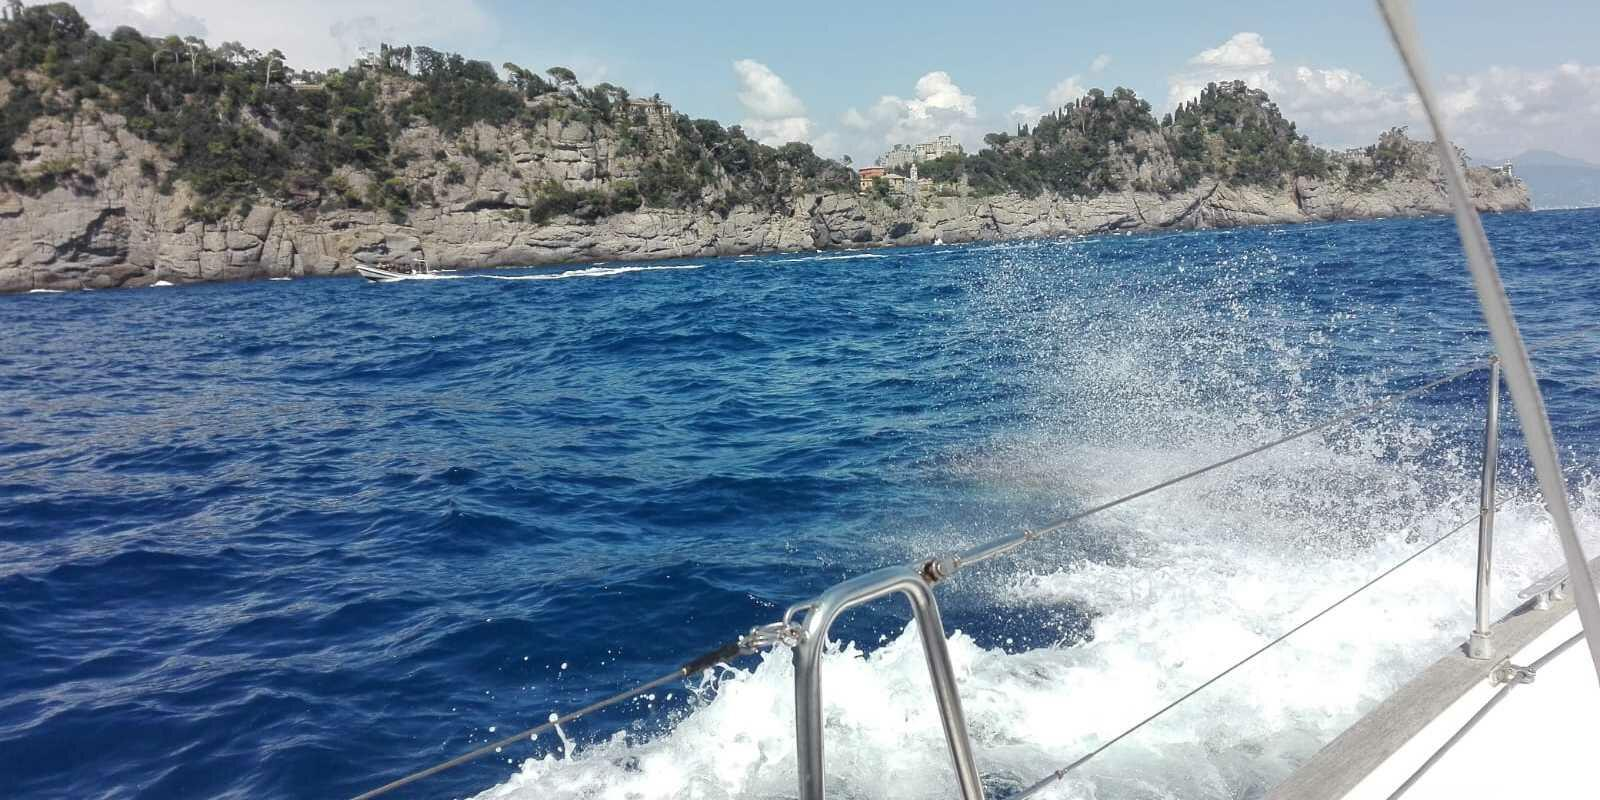 Relaxation and navigation between the islands